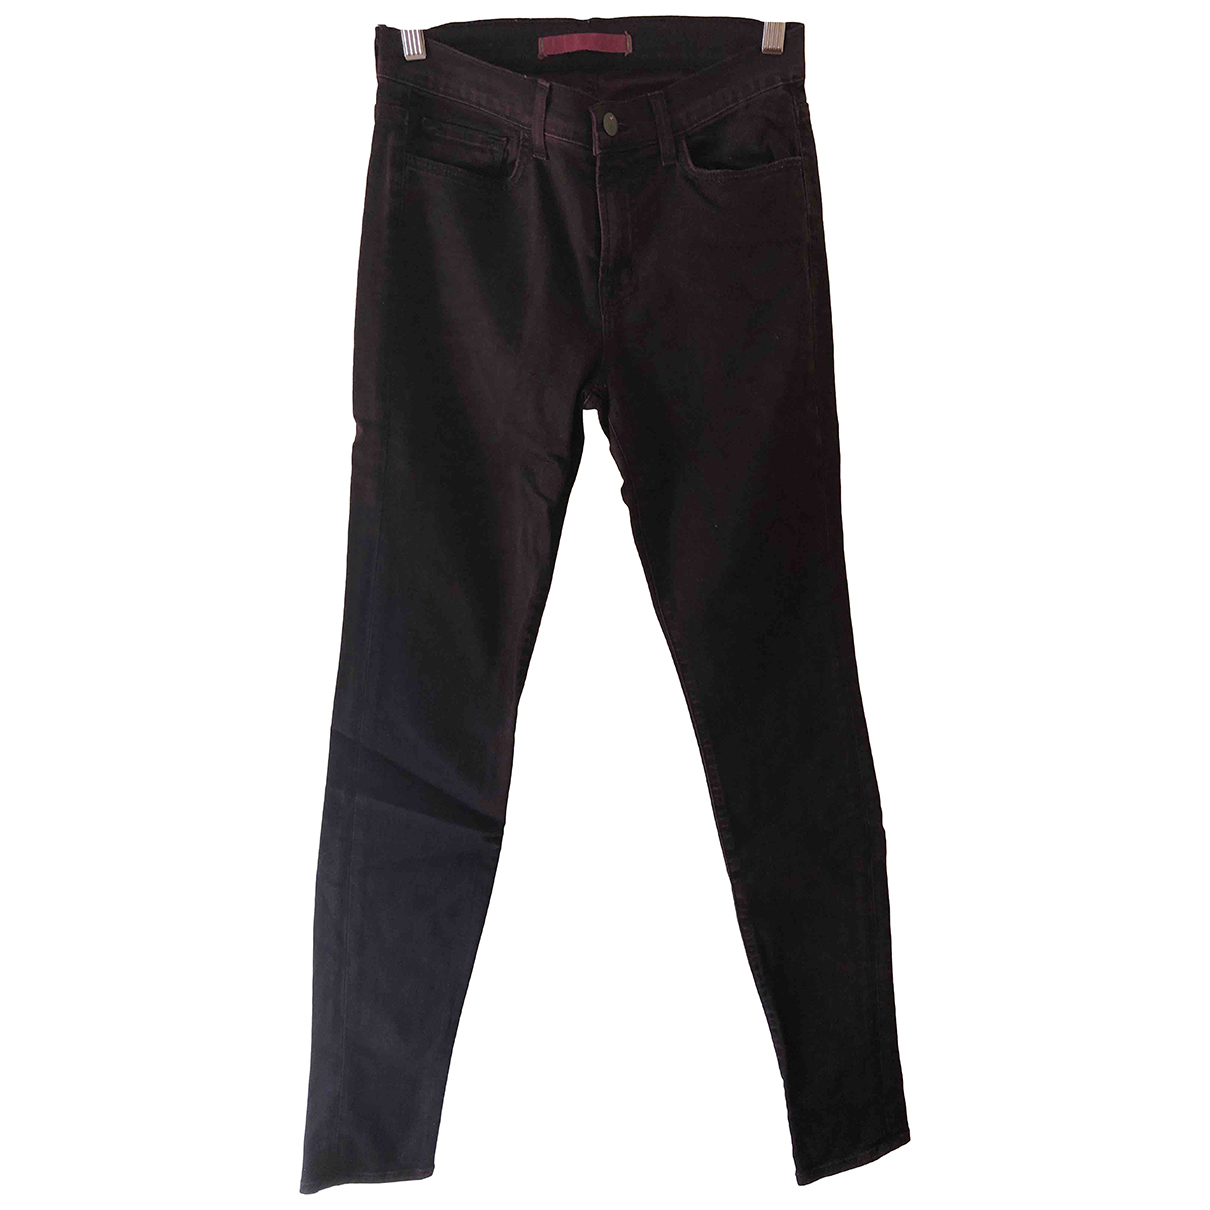 J Brand N Burgundy Cotton Jeans for Women 27 US